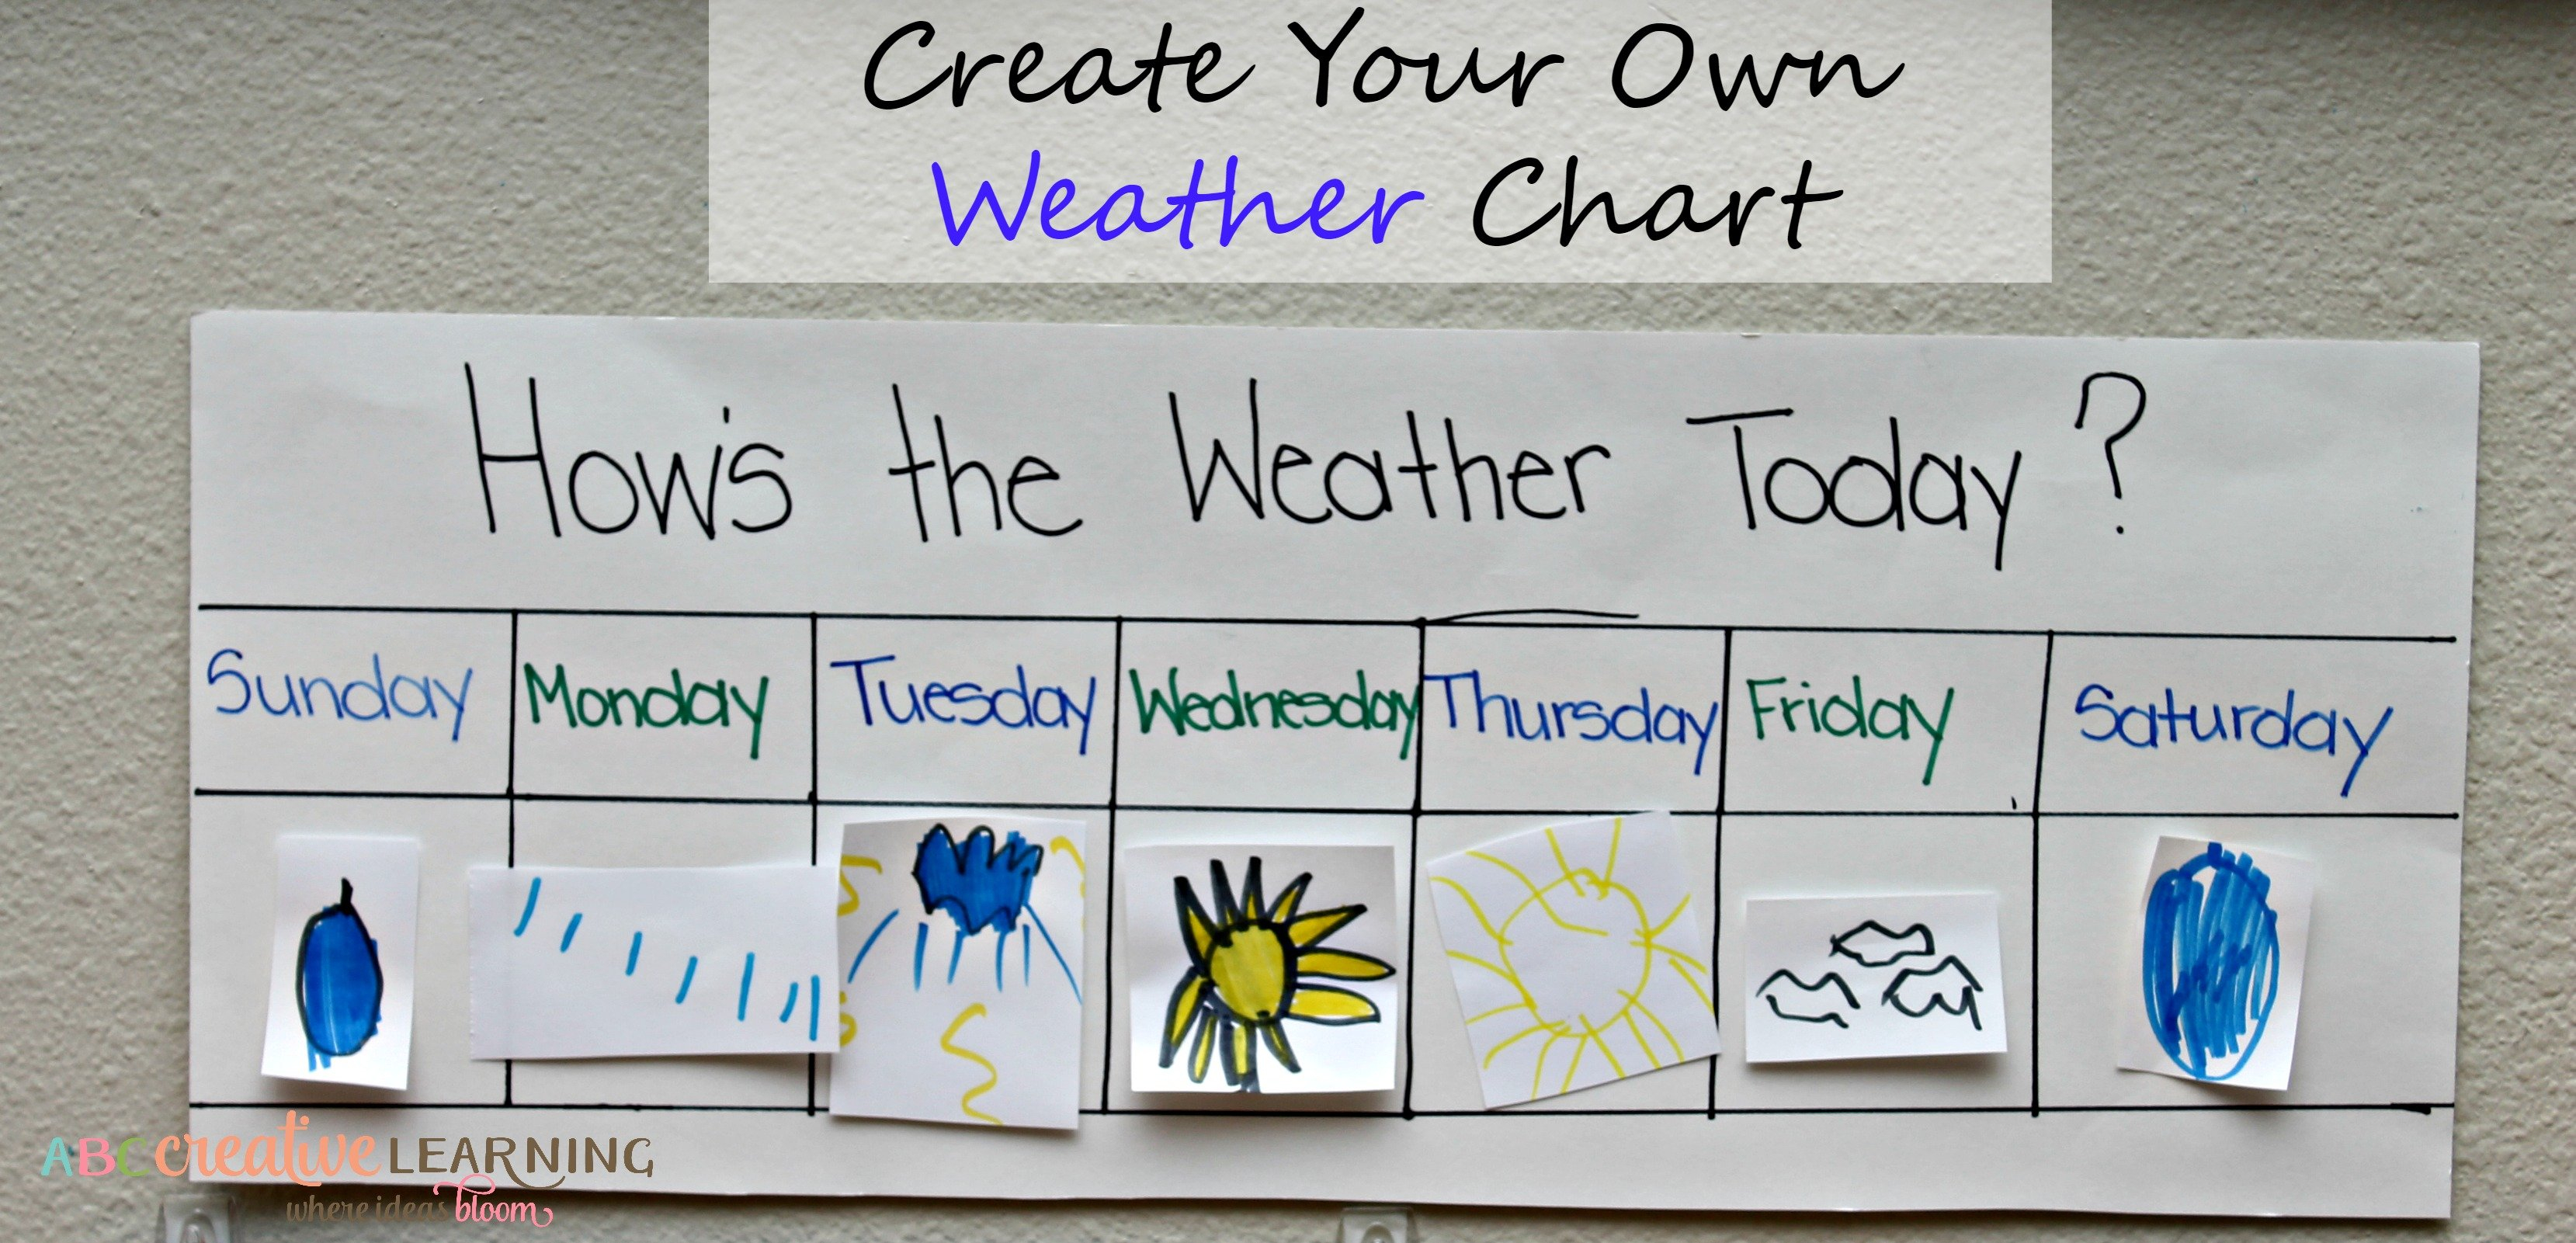 Create Your Own Classroom Weather Chart - Simply Today Life Create A Chart From Monday To Friday